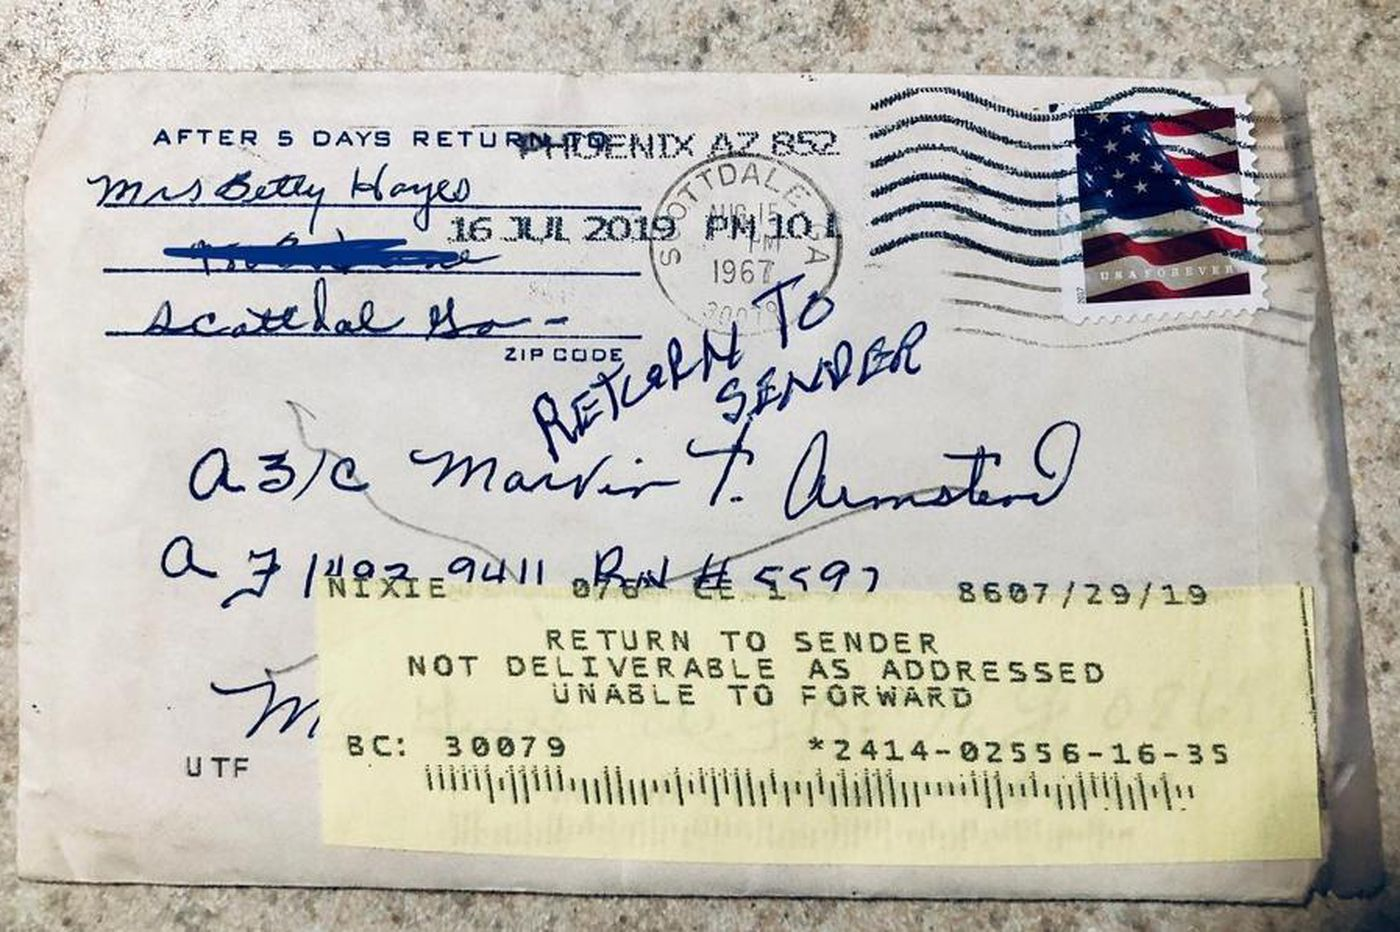 Unraveling the mystery of a letter from 1967 that just showed up in the mail